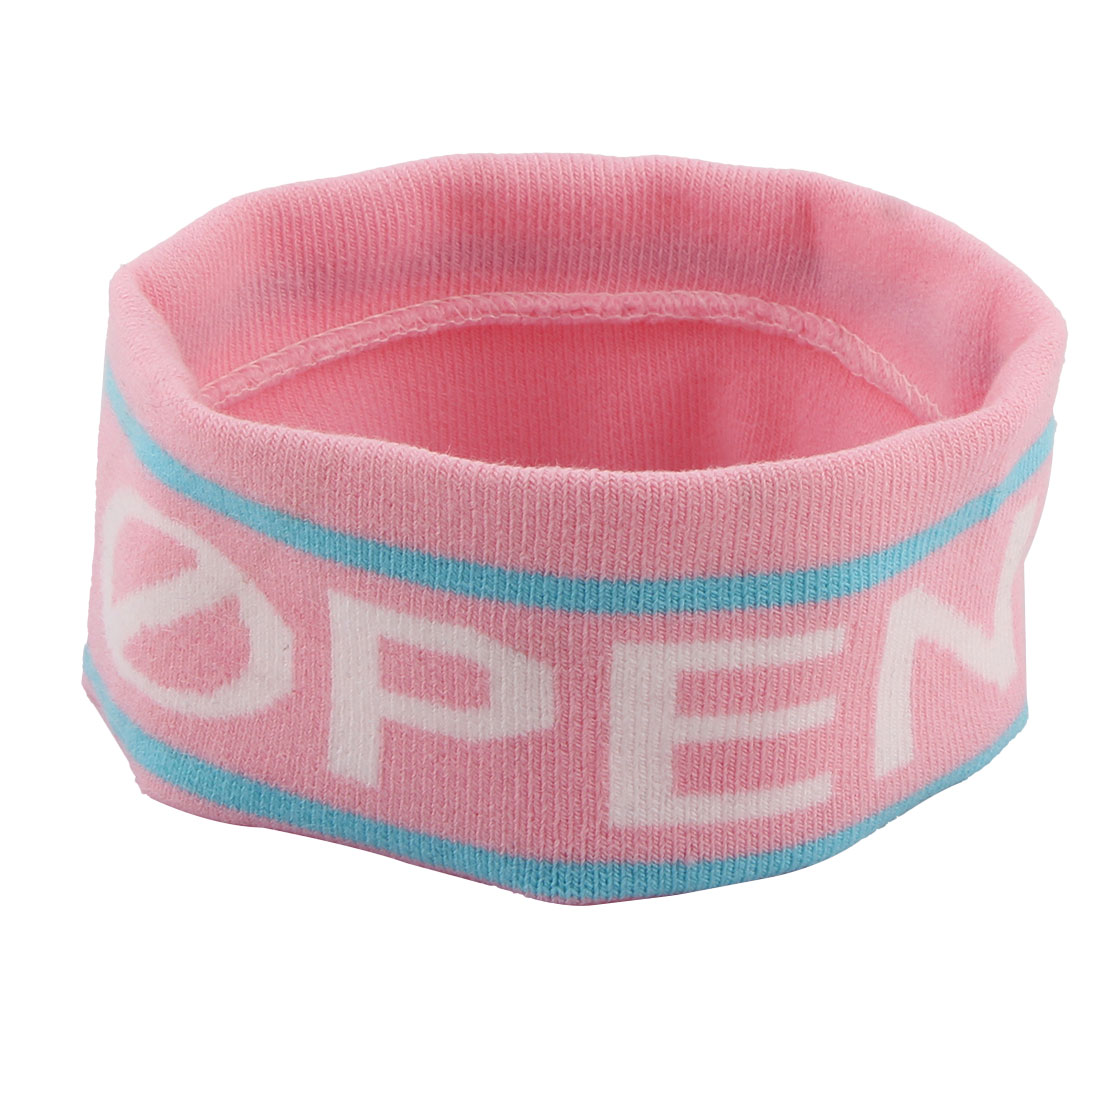 Yoga Volleyball Running Letter Print Elastic Hairstyle Sweatband Headband